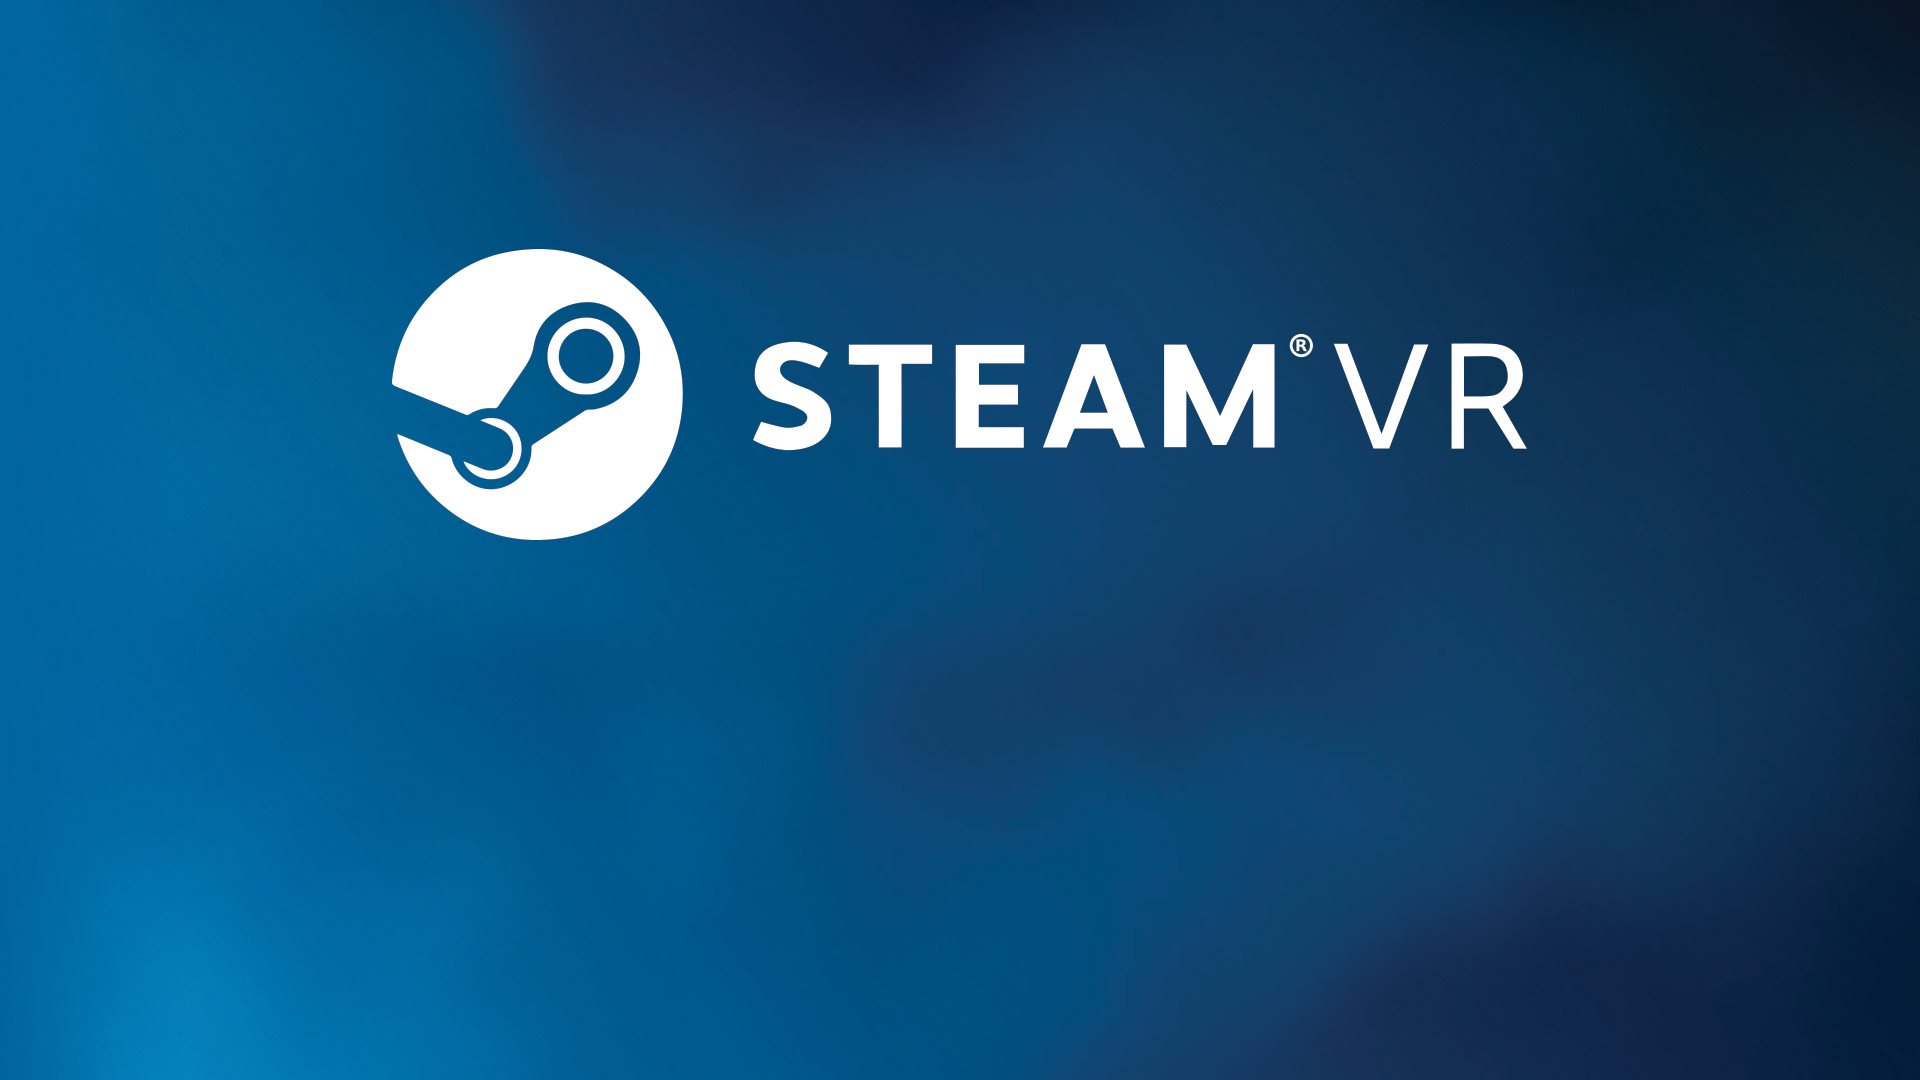 steamvr valve oculus rift support